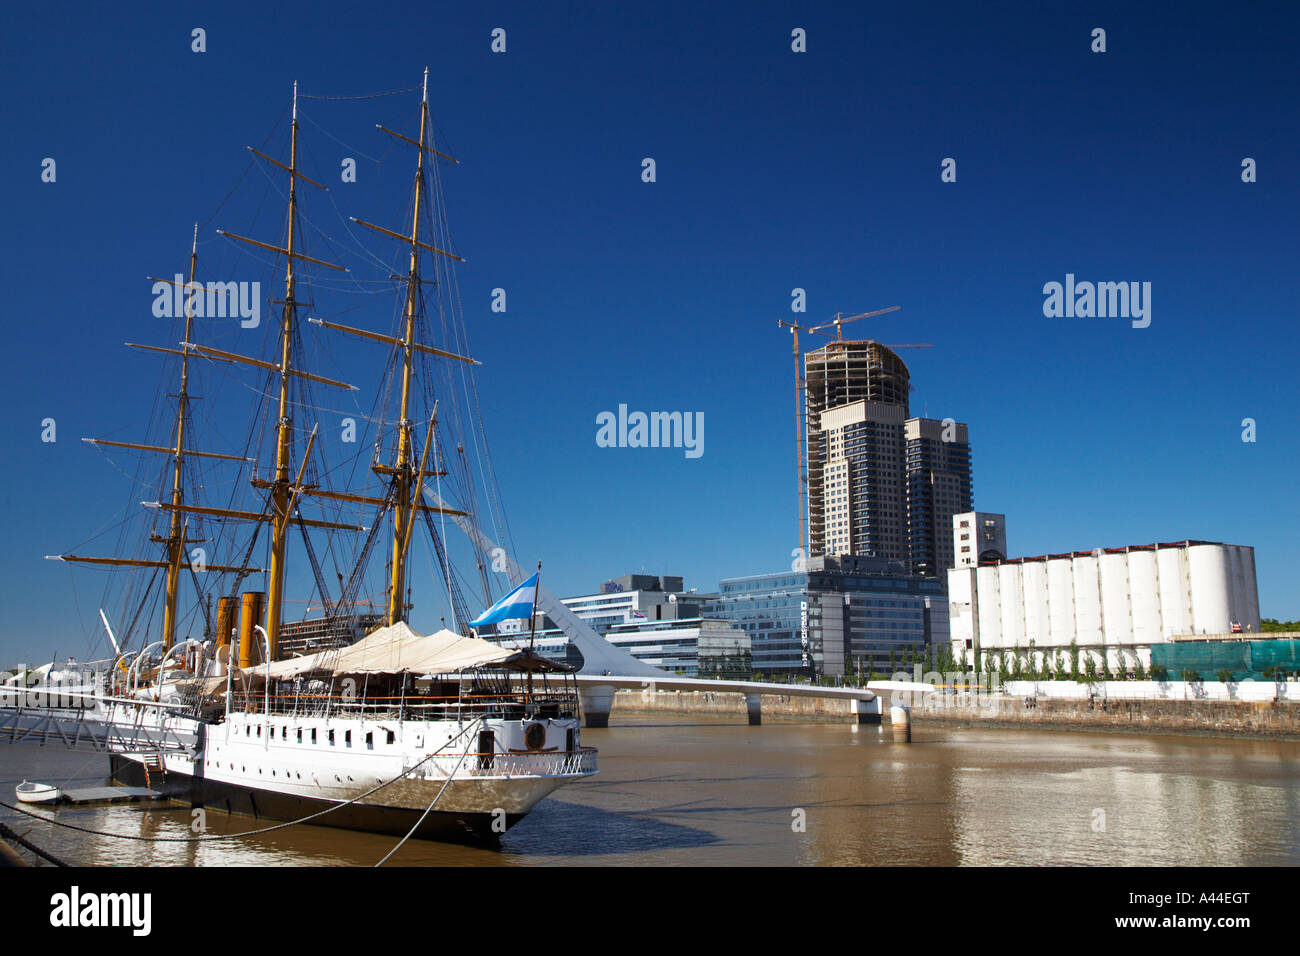 Argentina Buenos Aires Province Buenos Aires Fragata Sarmiento an historic saling ship moored on the dock side of - Stock Image